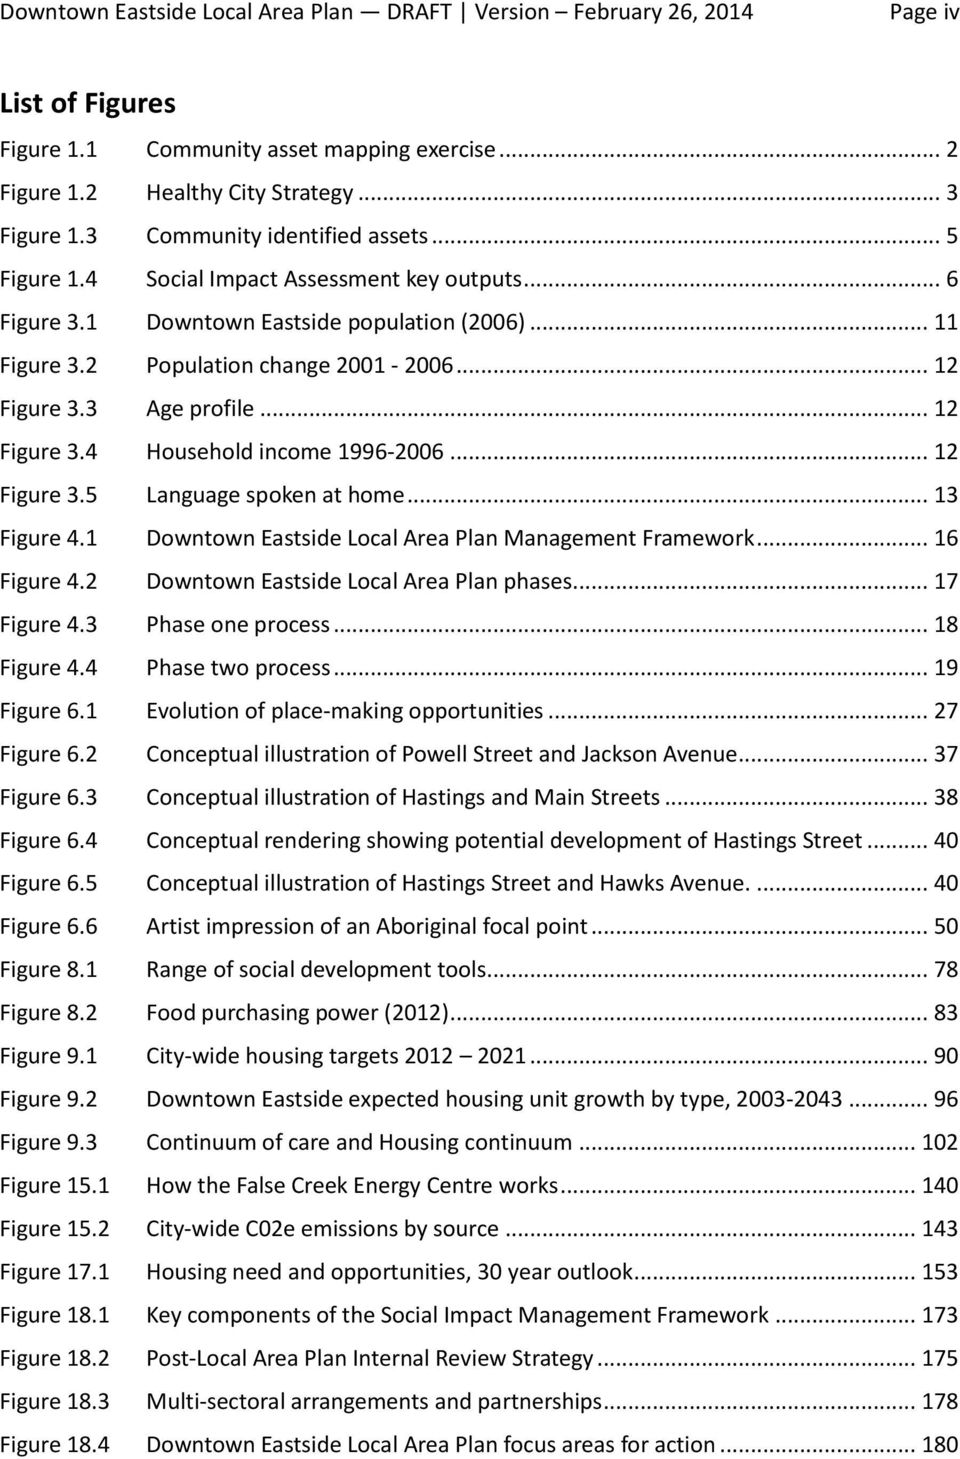 3 Age profile... 12 Figure 3.4 Household income 1996-2006... 12 Figure 3.5 Language spoken at home... 13 Figure 4.1 Downtown Eastside Local Area Plan Management Framework... 16 Figure 4.